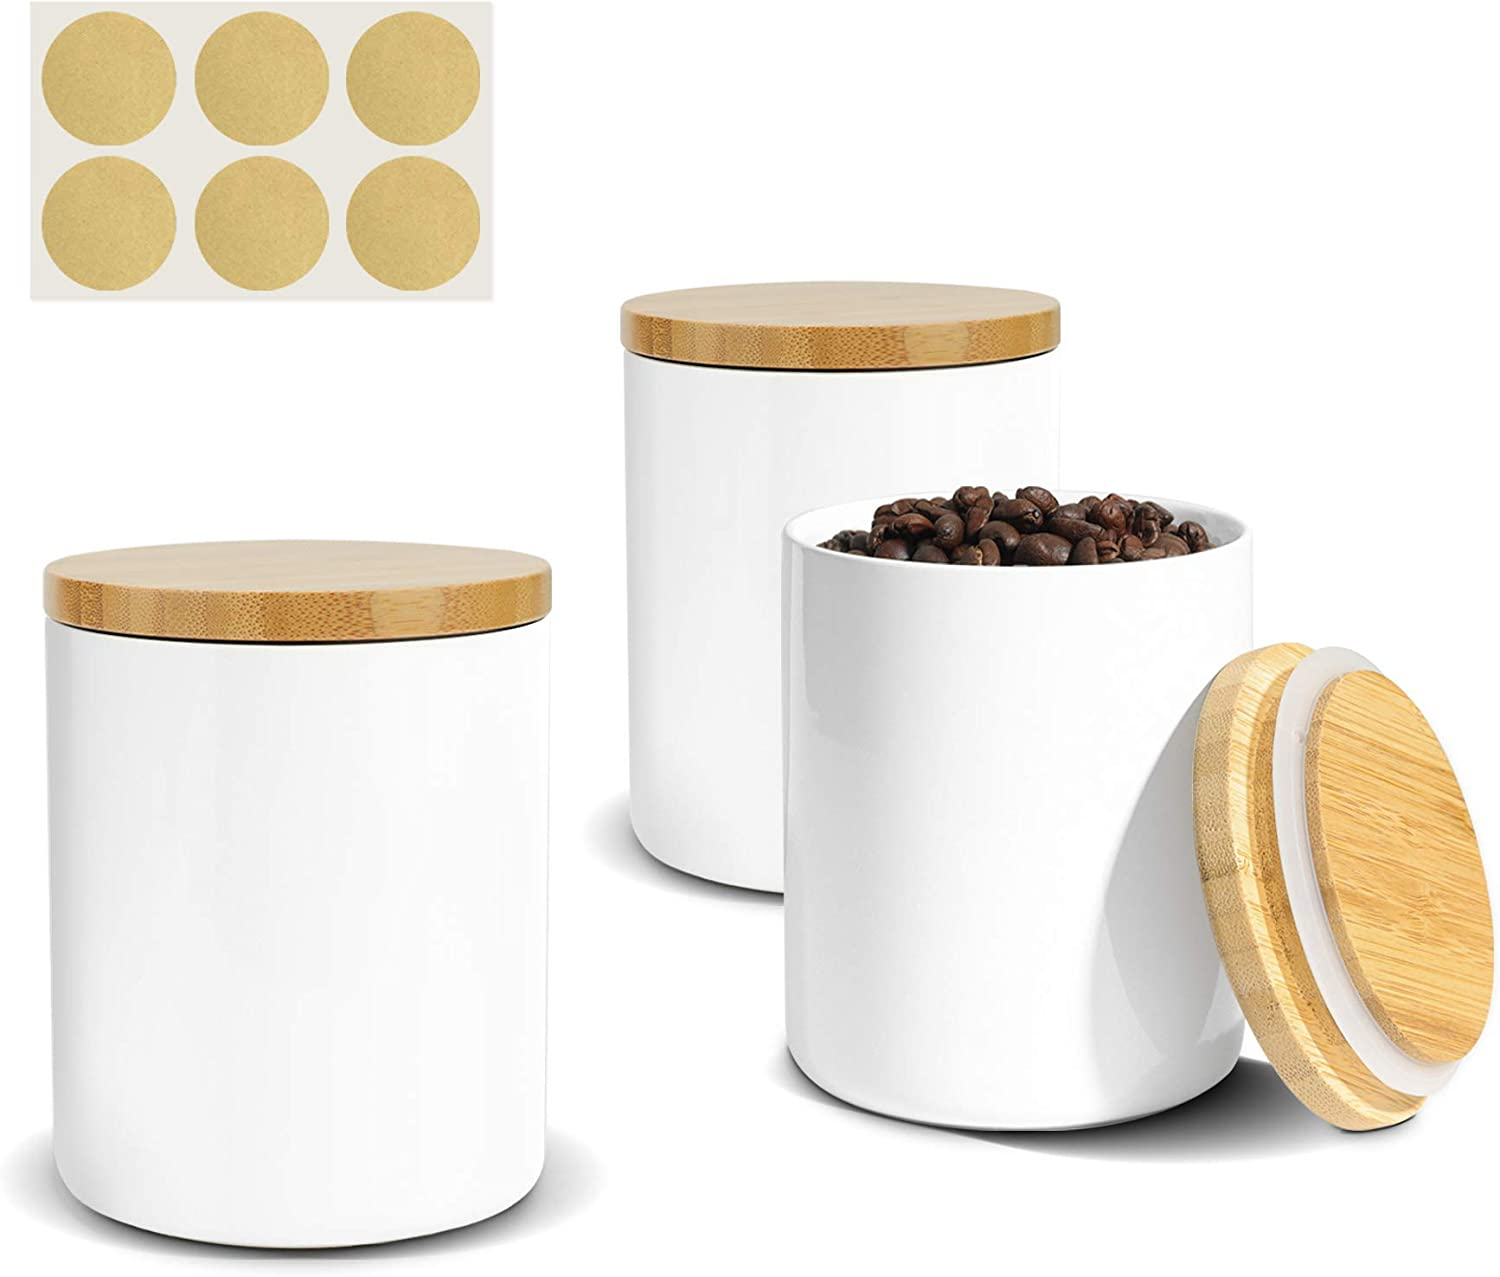 ComSaf Ceramic Food Storage Canisters with Airtight Bamboo Lid (17oz/500ml) Set of 3, White Food Storage Jar Containers with Seal Wood Lid for Kitchen Pantry Serving Sugar, Tea, Cereal and Snack